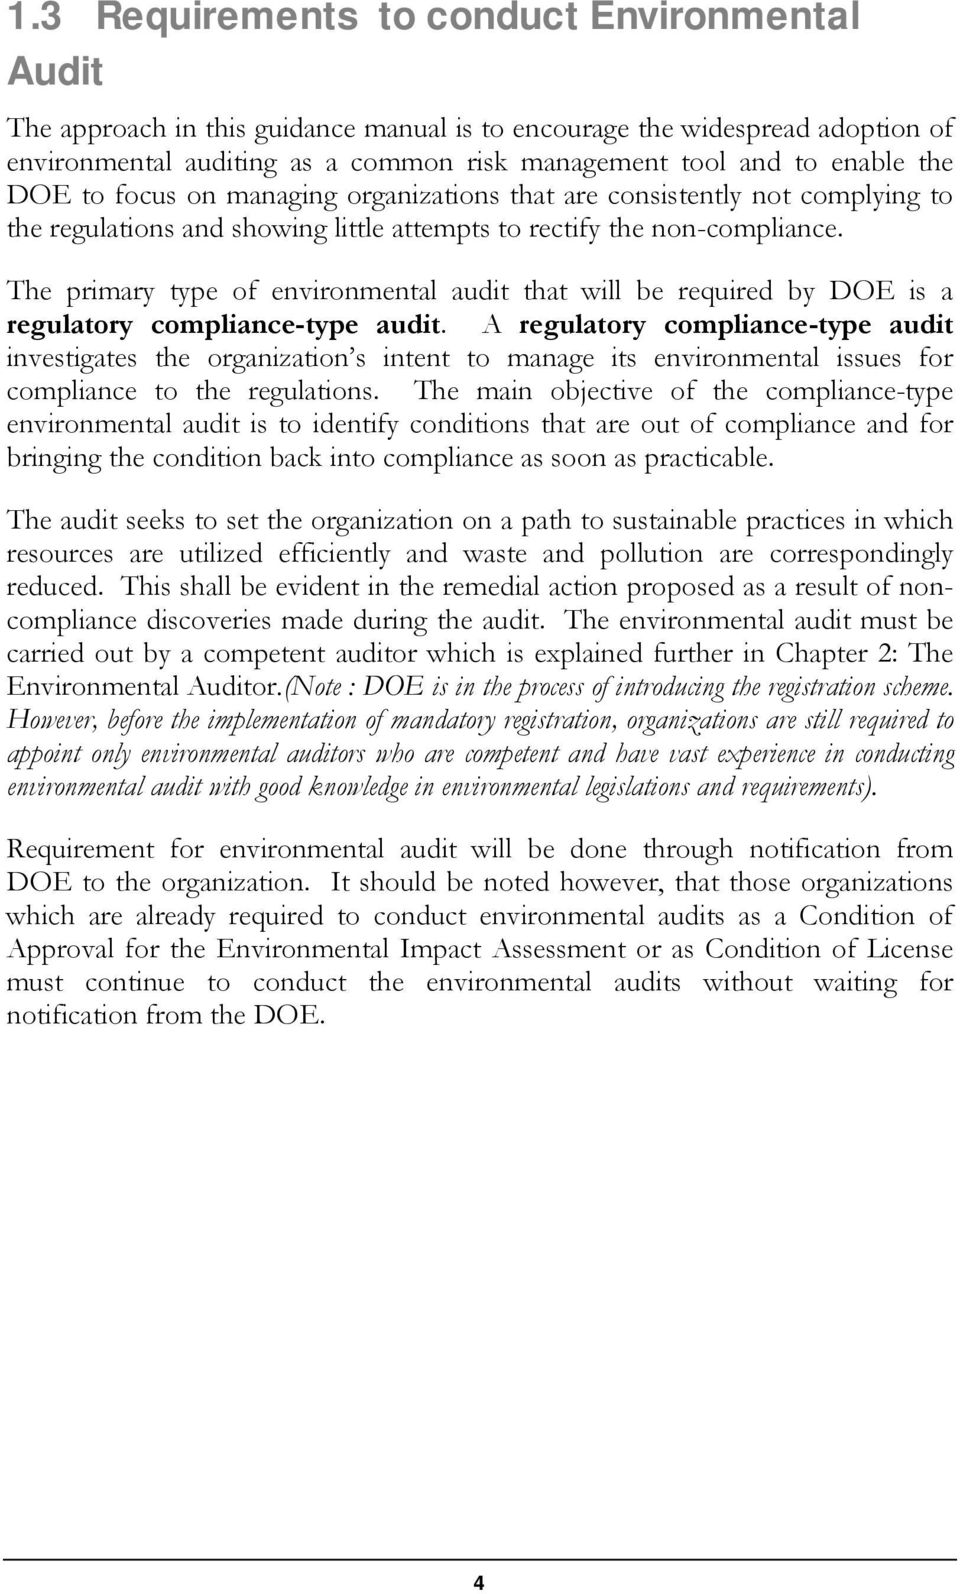 The primary type of environmental audit that will be required by DOE is a regulatory compliance-type audit.